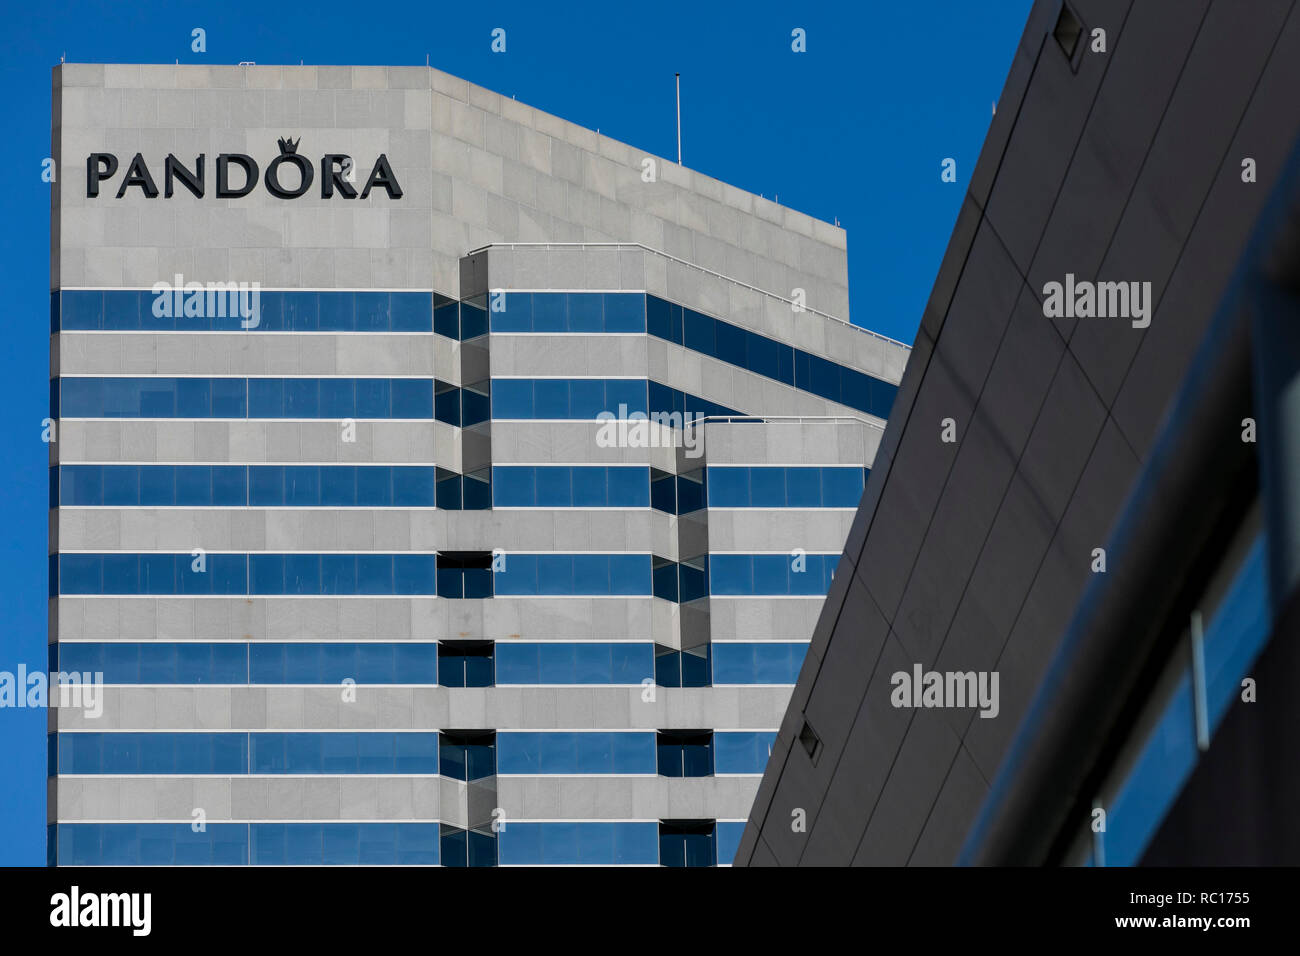 A logo sign outside of a facility occupied by Pandora Jewelry in Baltimore, Maryland on January 11, 2019. - Stock Image